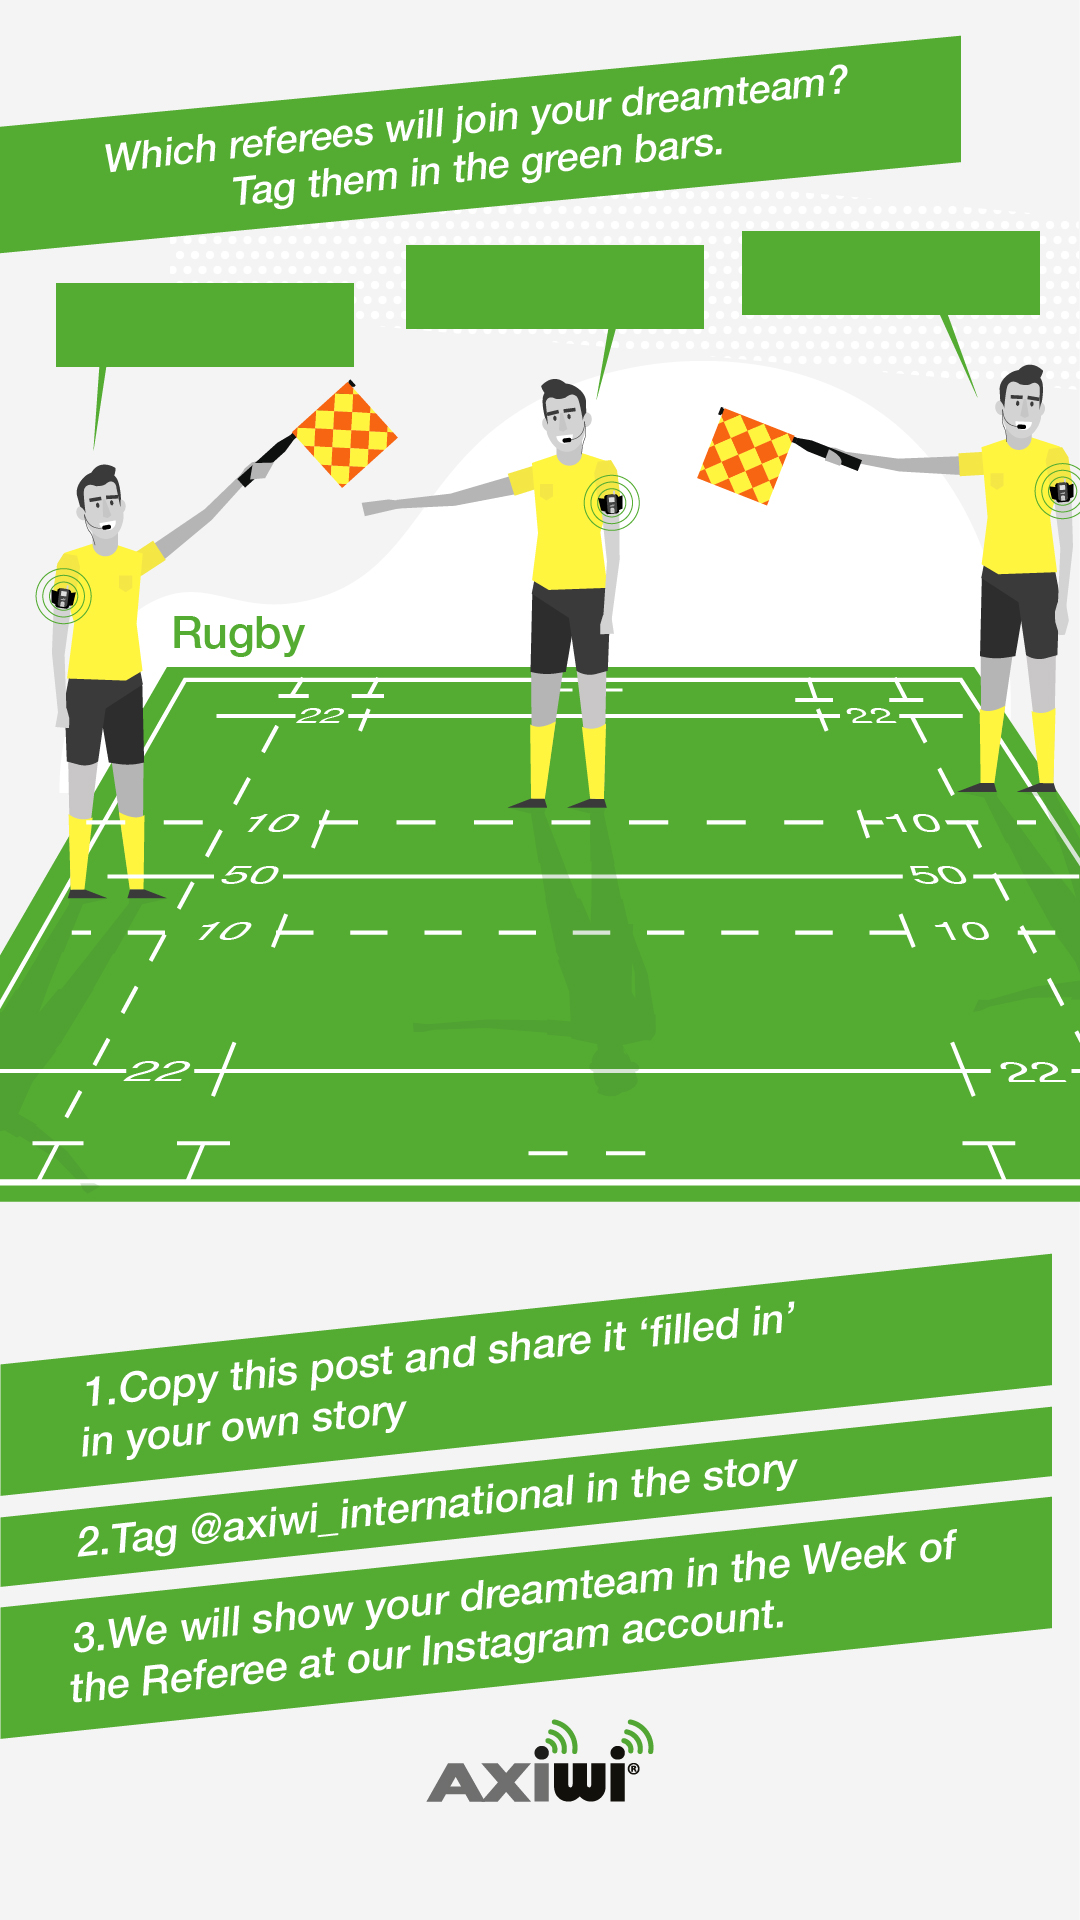 axiwi-dreamteam-rugby